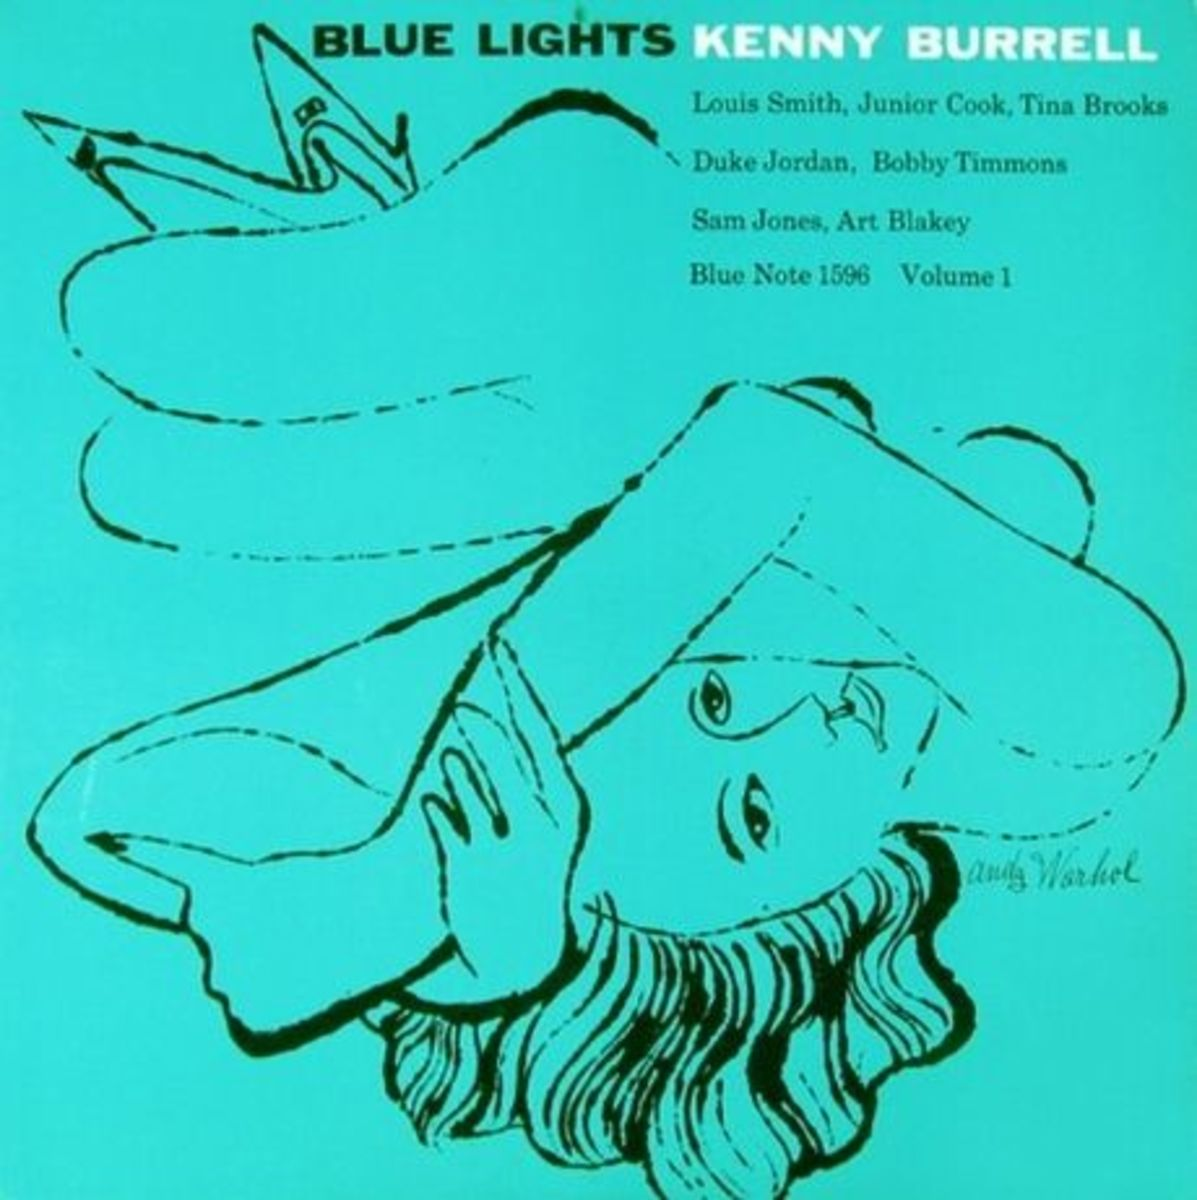 "Kenny Burrell ""Blue Lights, vol. 1"" Blue Note Records BLP 1596 12"" LP Vinyl Record with Album Cover Art by Andy Warhol"